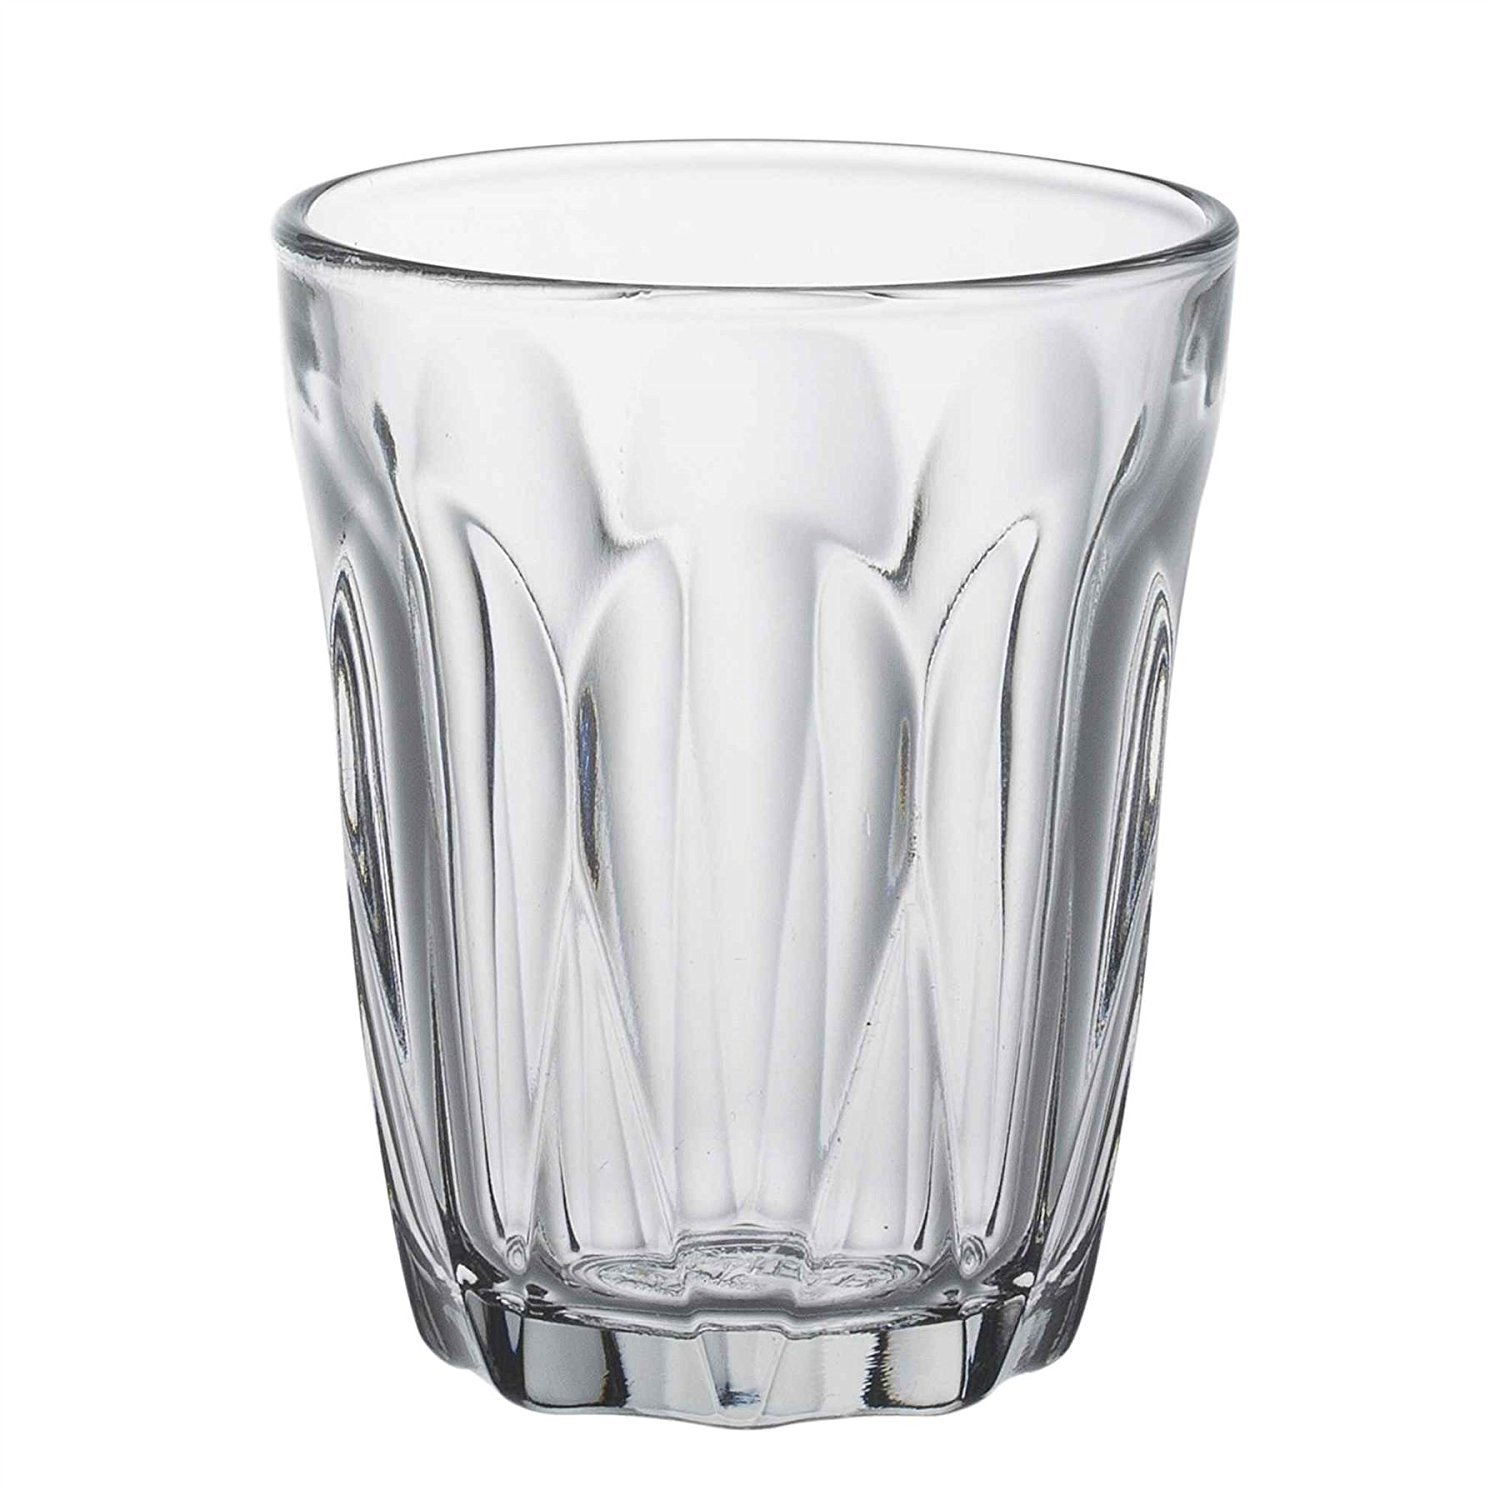 Duralex Provence water glass 130ml, without filling mark, 6 Glasses 1037AB